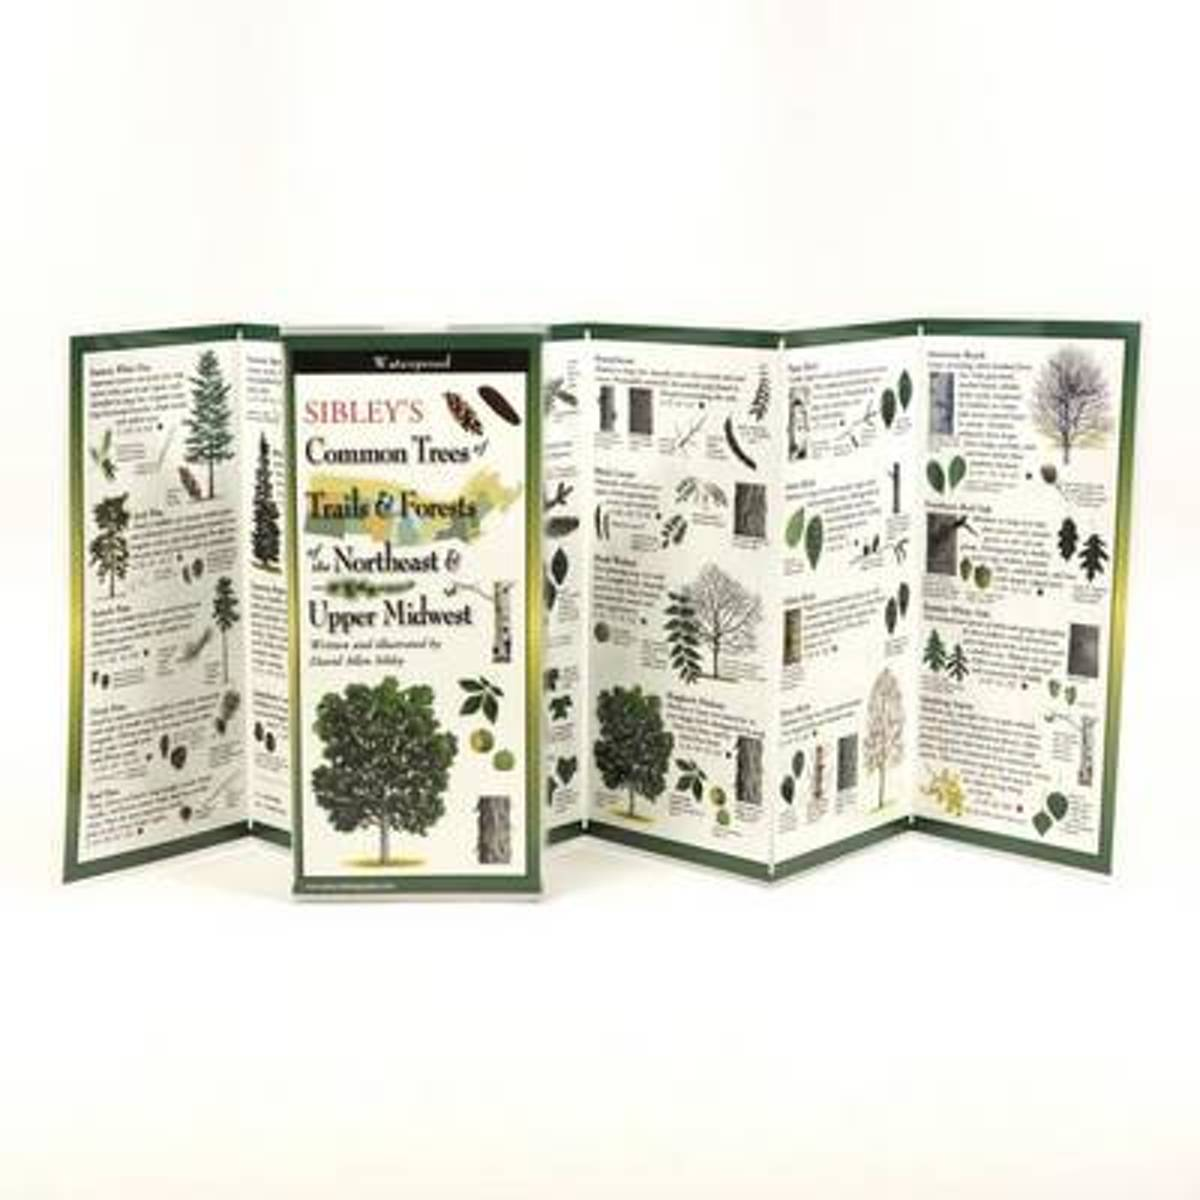 Sibley's Trees of Trails and Forests of the Northeast & Upper Midwest